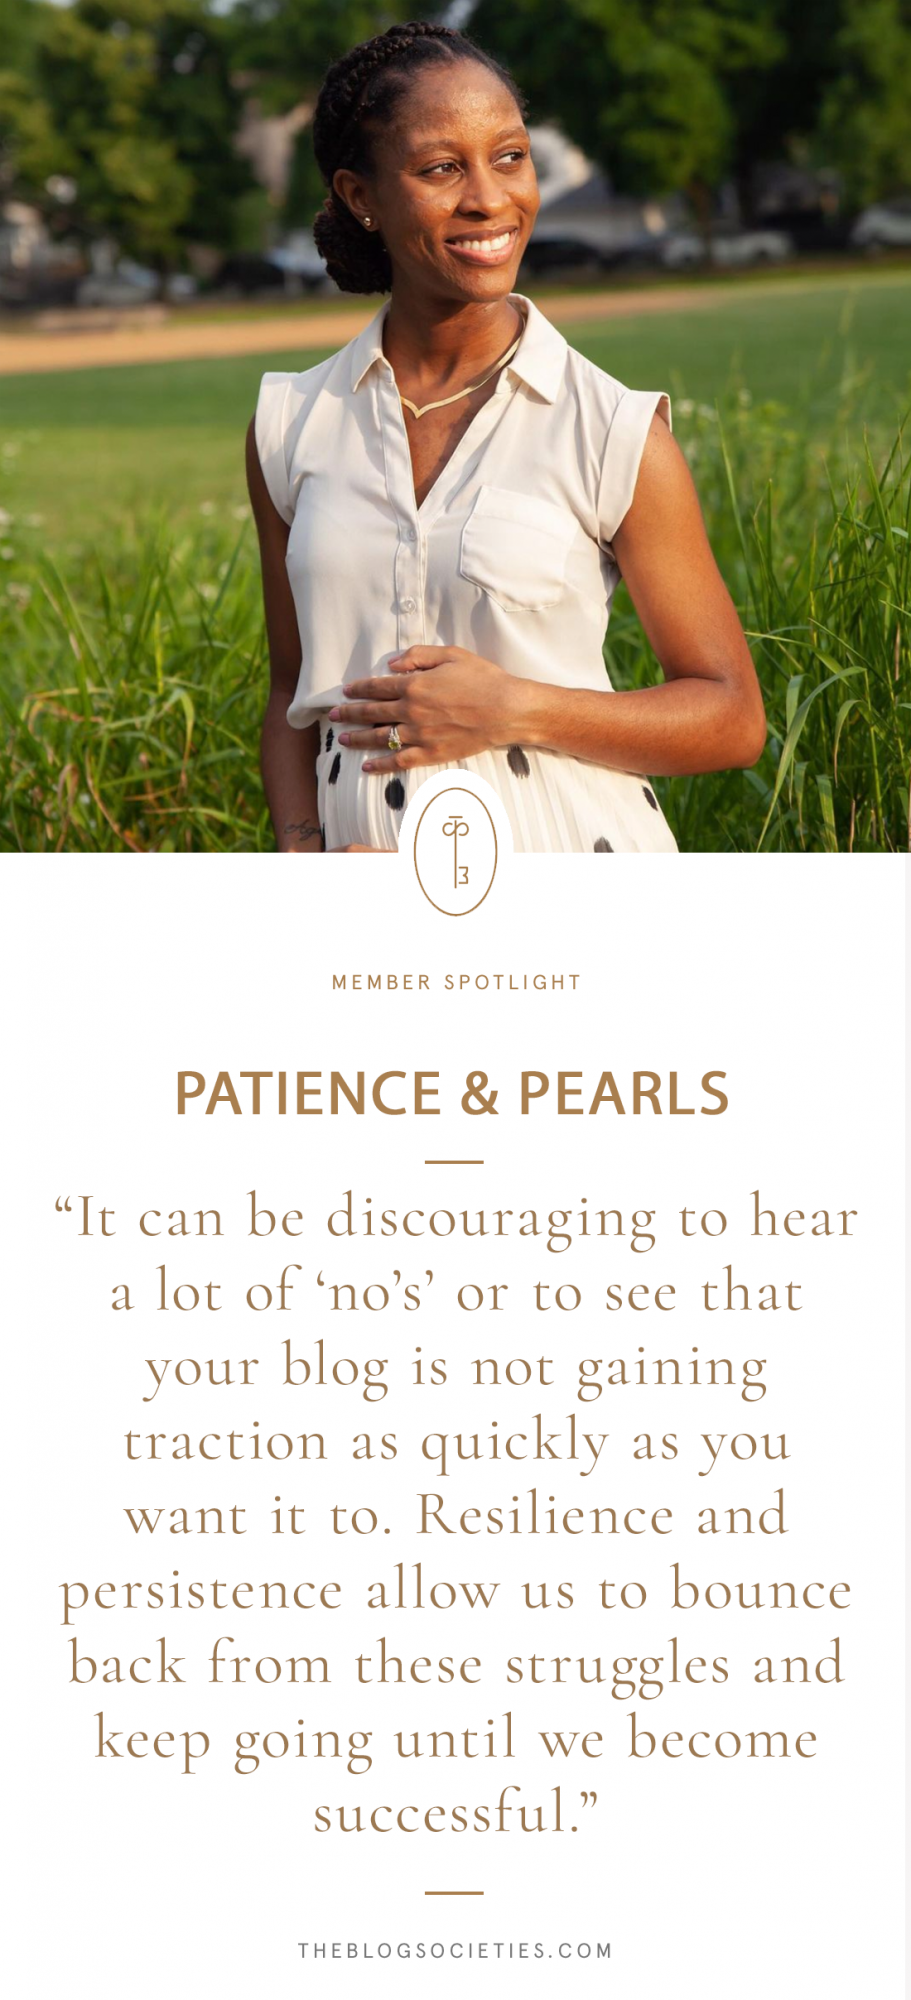 Spring of Patience & Pearls